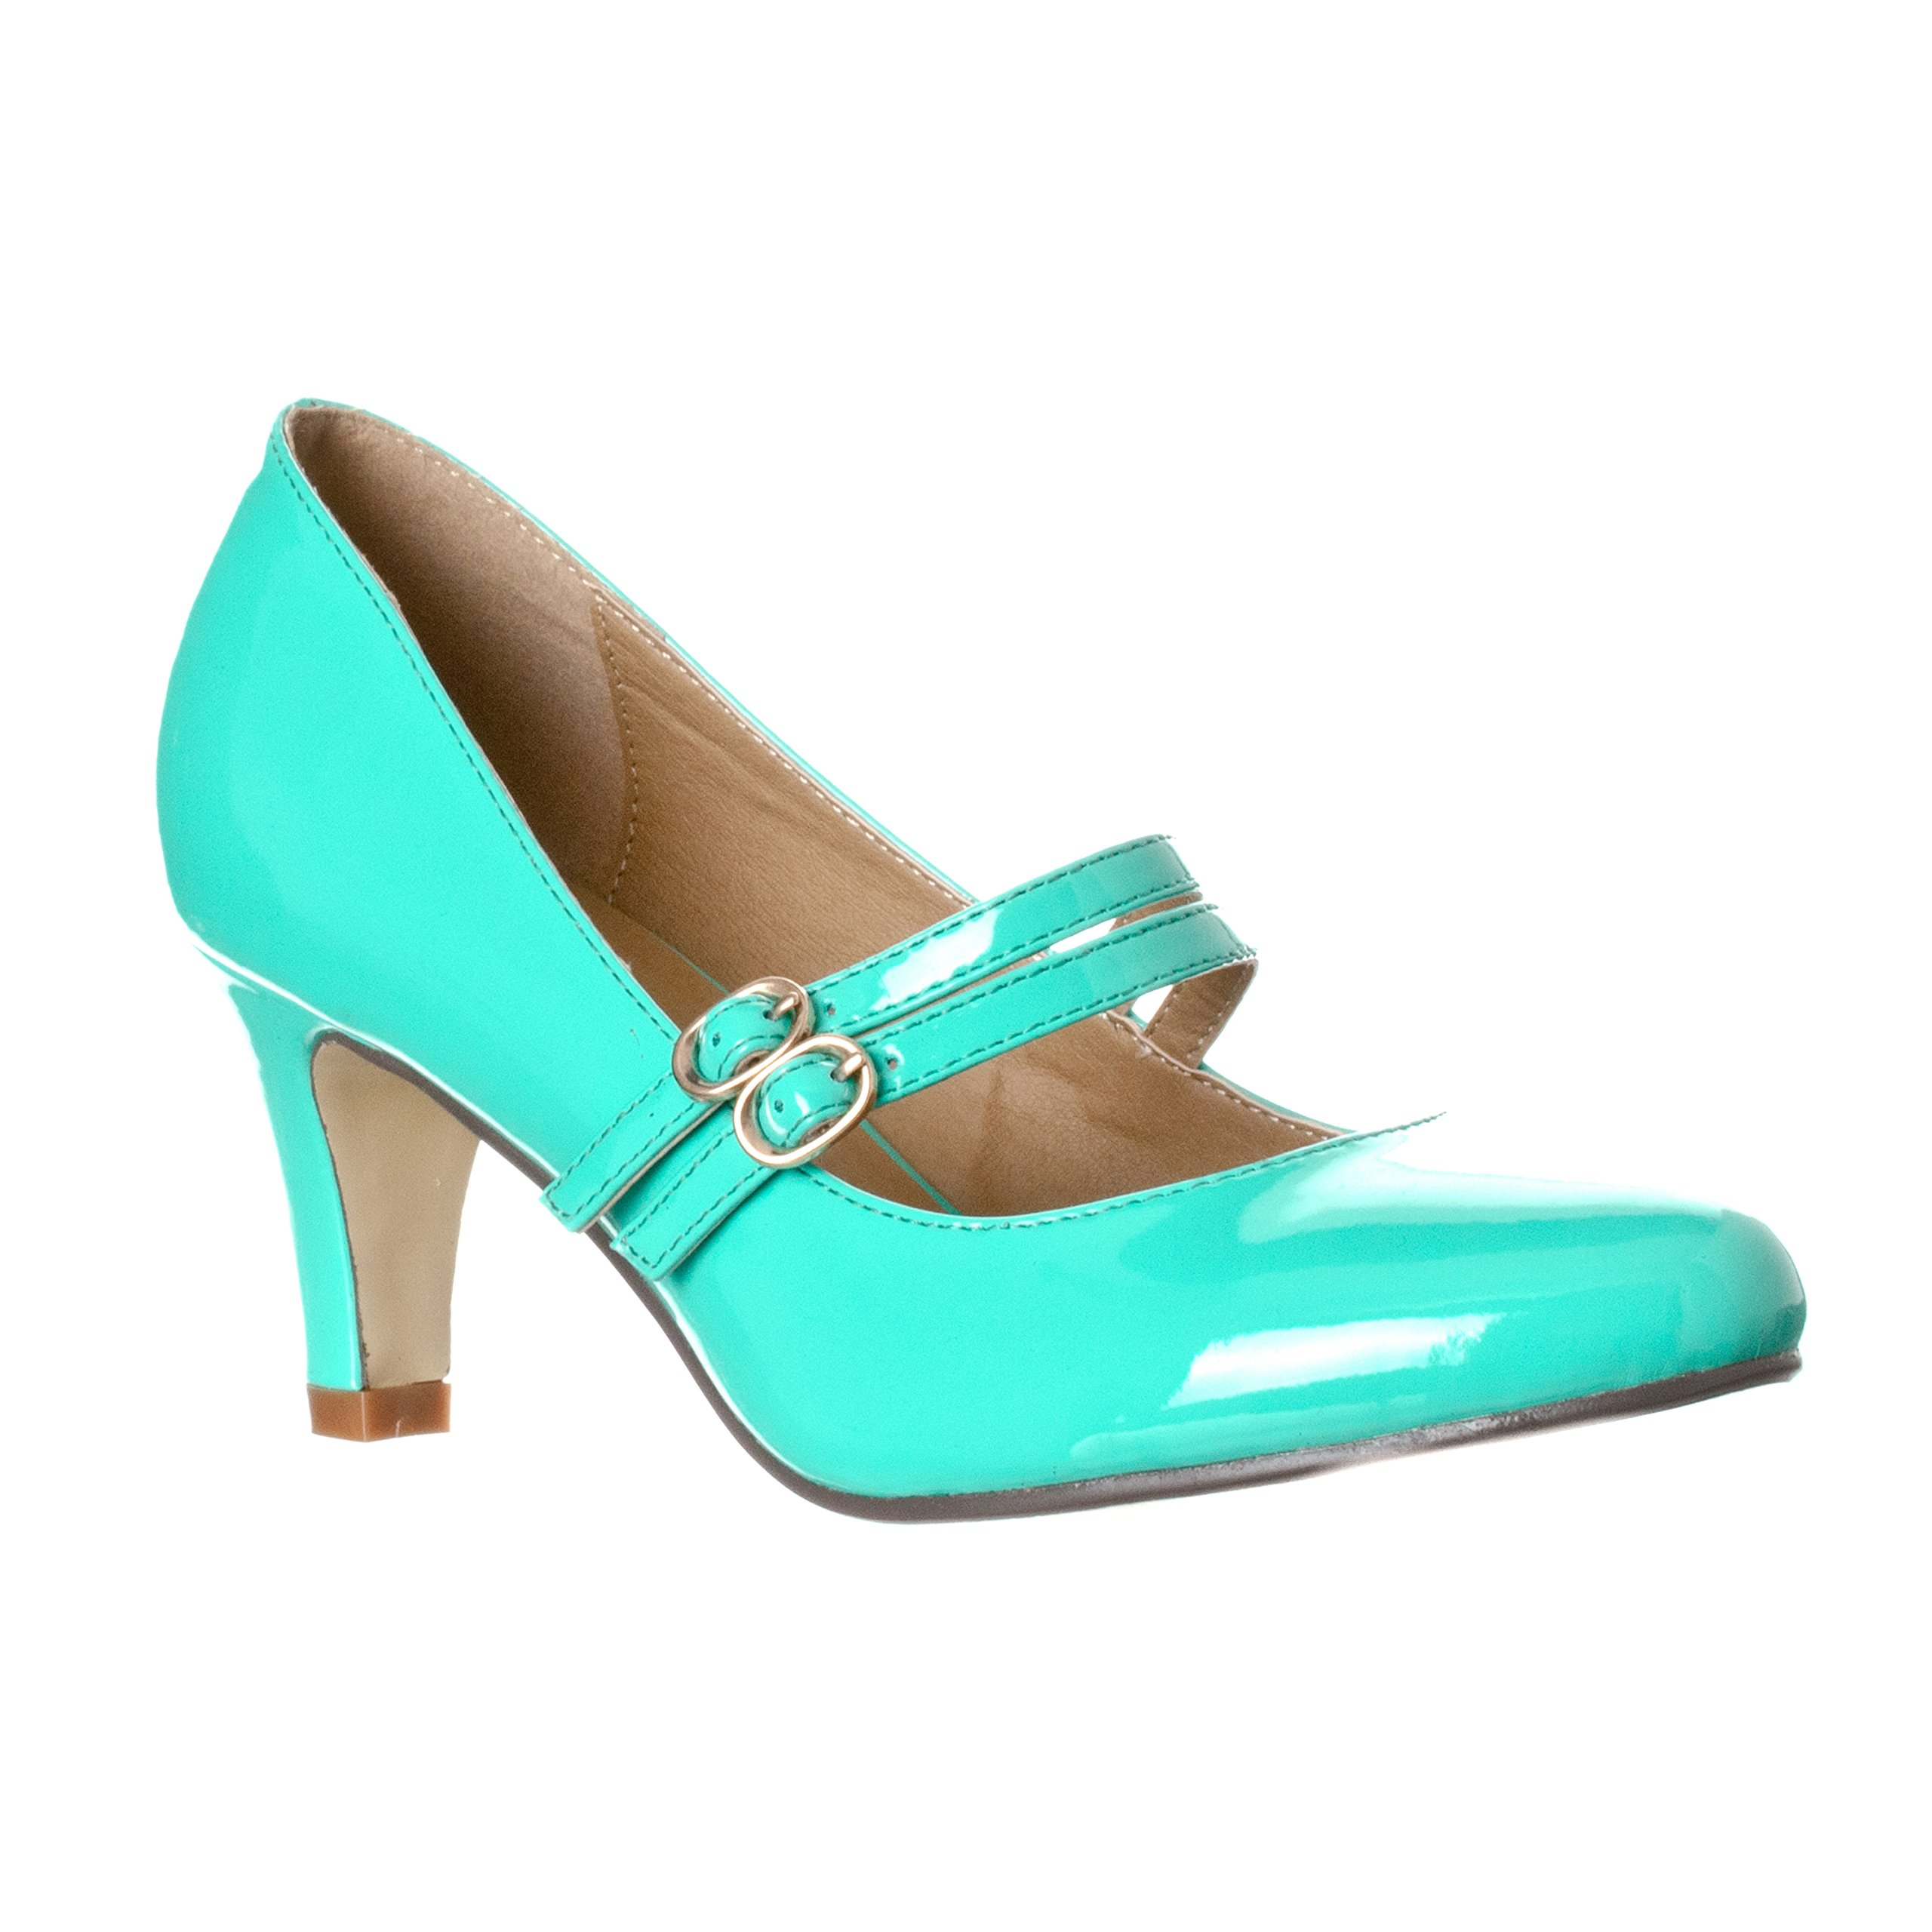 Riverberry Women's Mila Chunky, Mid Heel Mary Jane Pump Heels, Mint Patent, 6